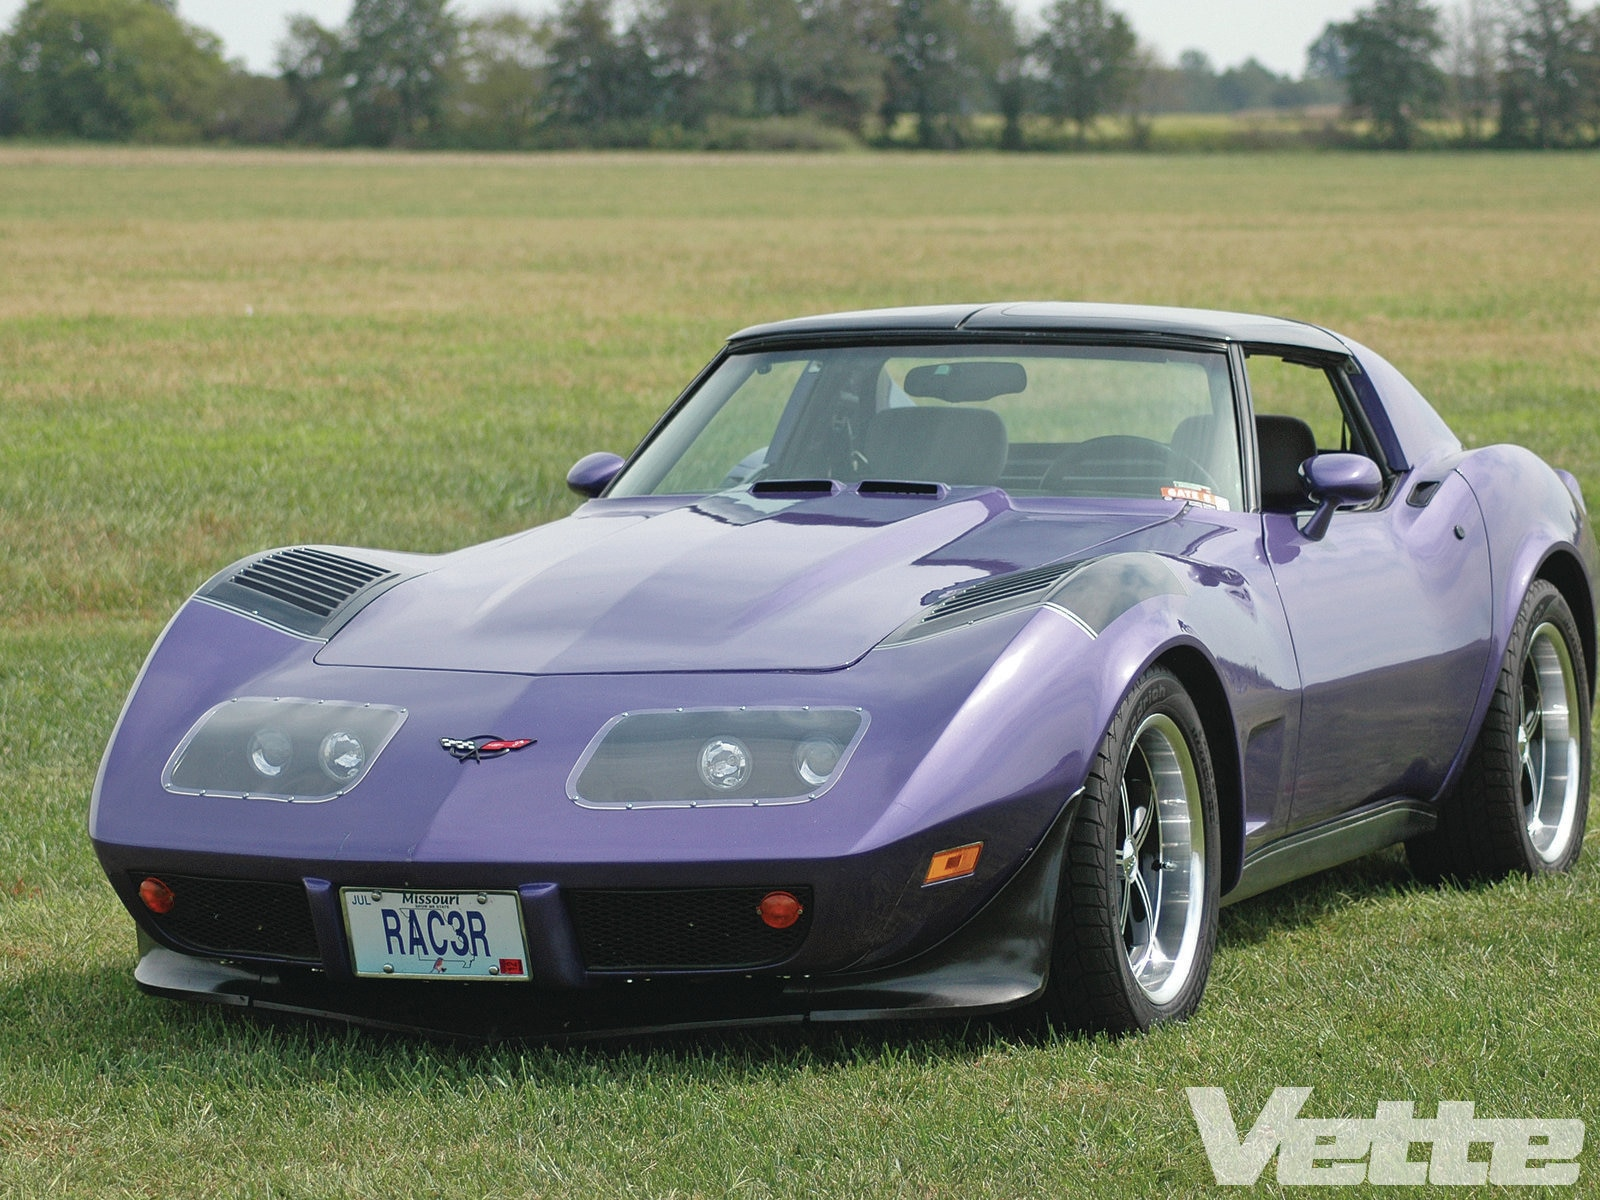 1974 Chevrolet Corvette Custom Autocross Prepped C3 Stingray Coupe